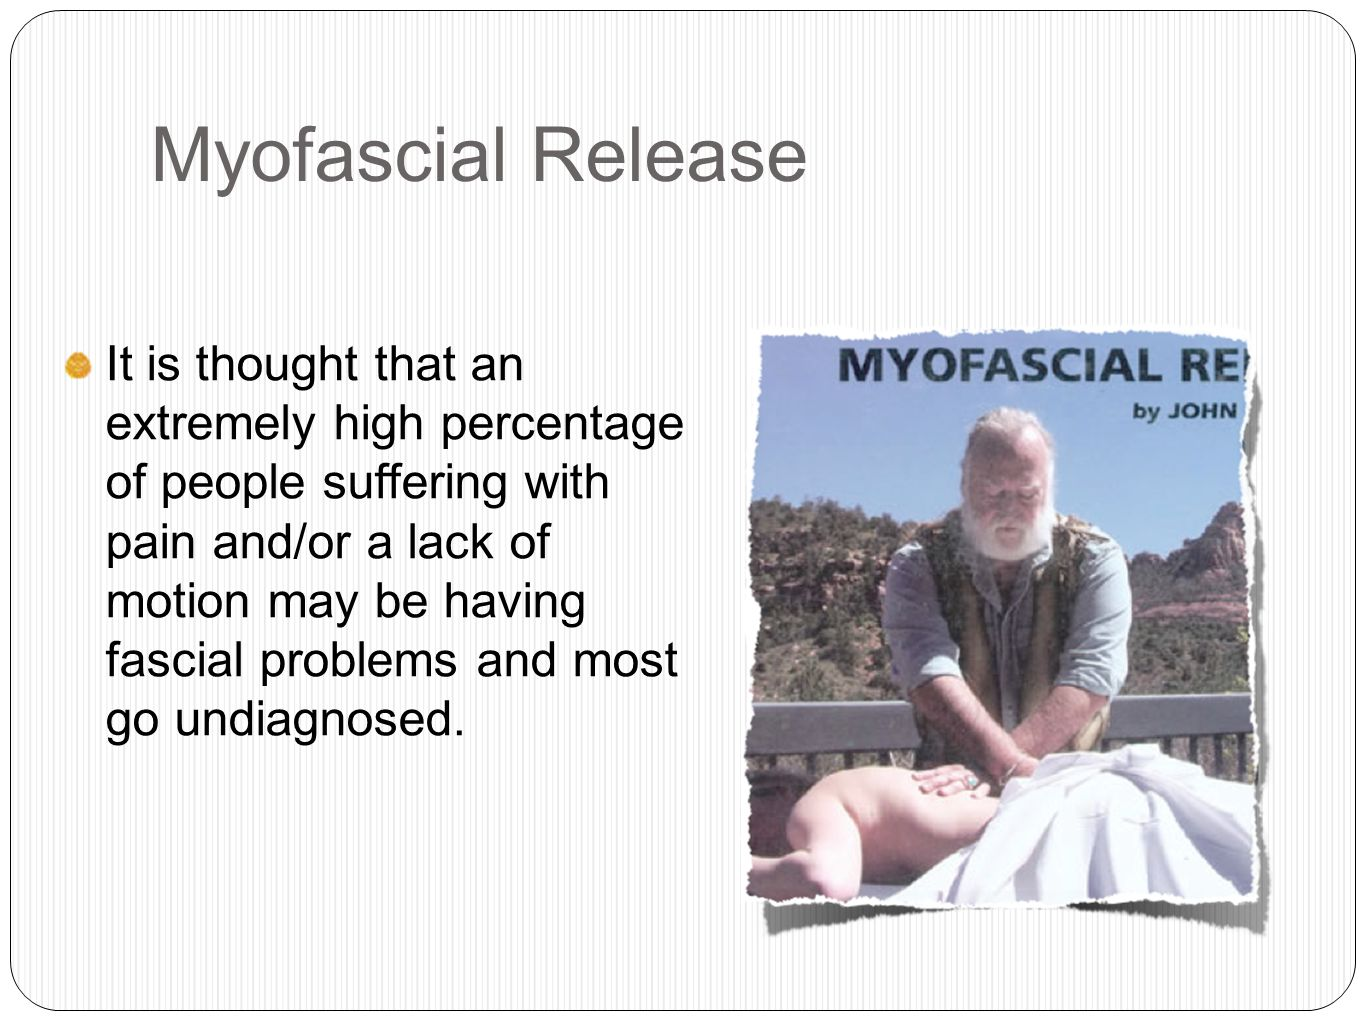 Myofascial Release It is thought that an extremely high percentage of people suffering with pain and/or a lack of motion may be having fascial problems and most go undiagnosed.